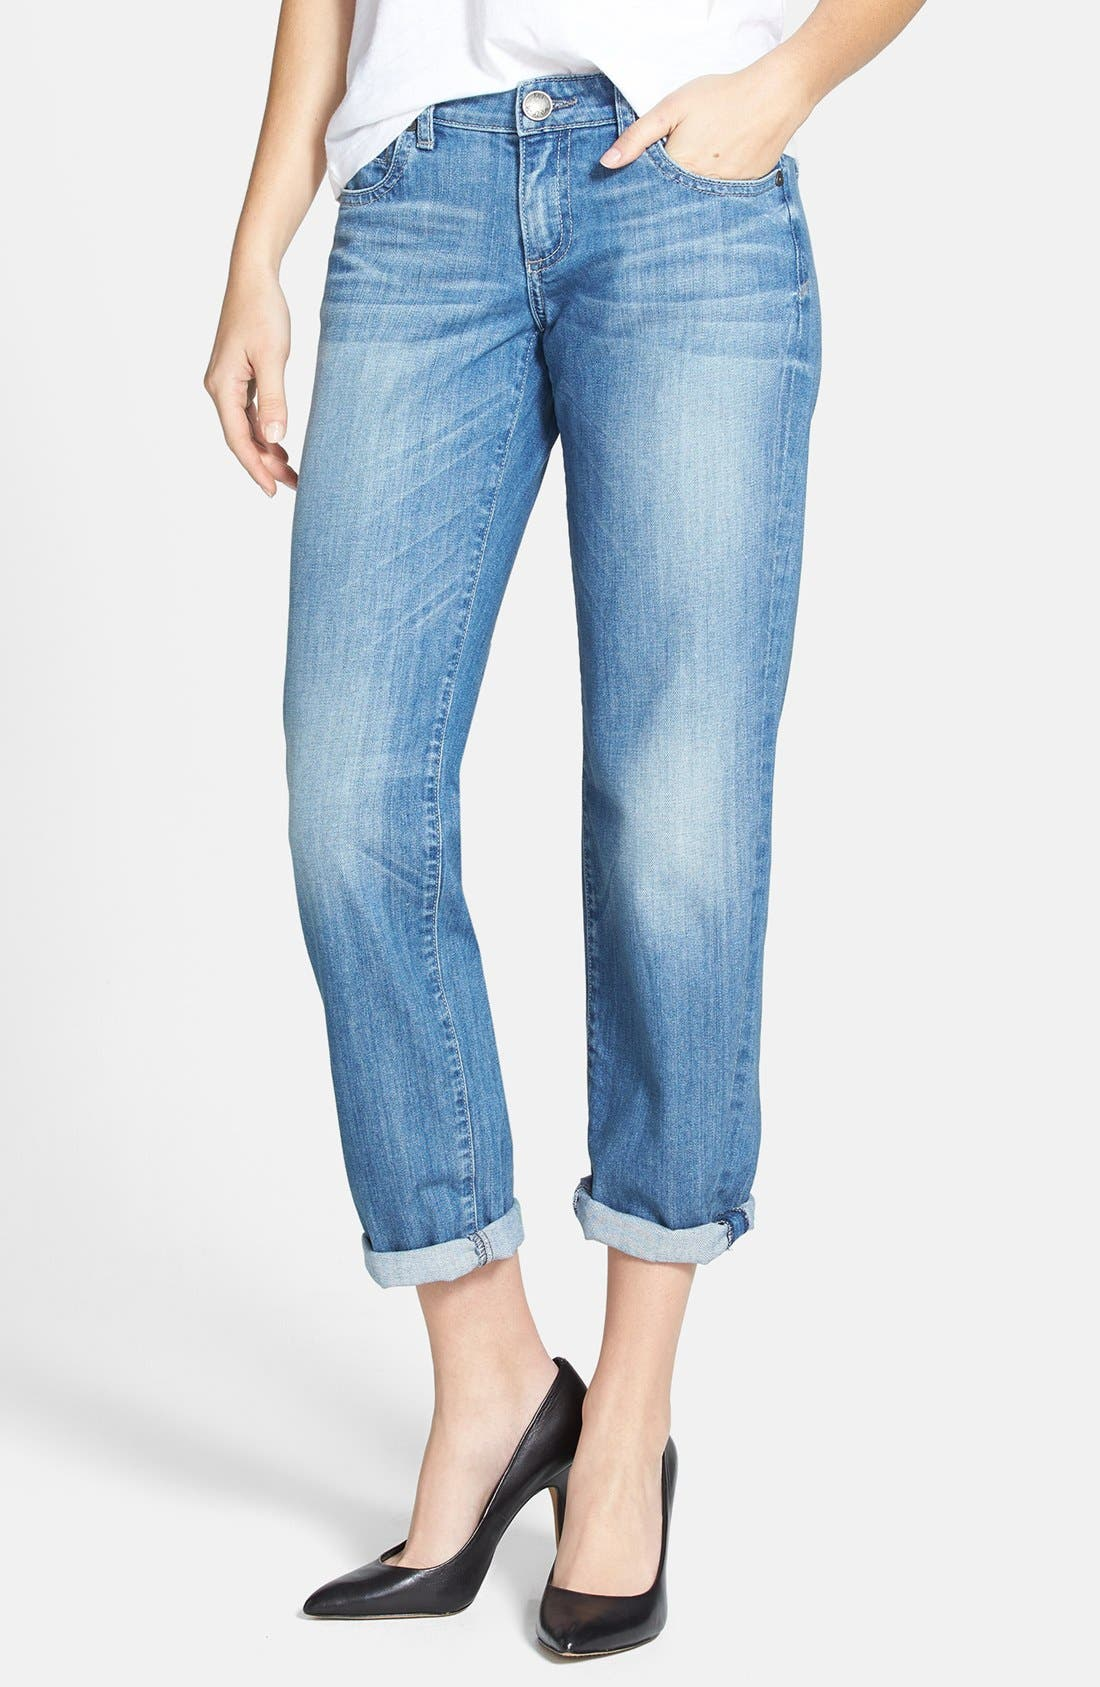 Alternate Image 1 Selected - KUT from the Kloth 'Catherine' Slim Boyfriend Jeans (Exceptional) (Regular & Petite)